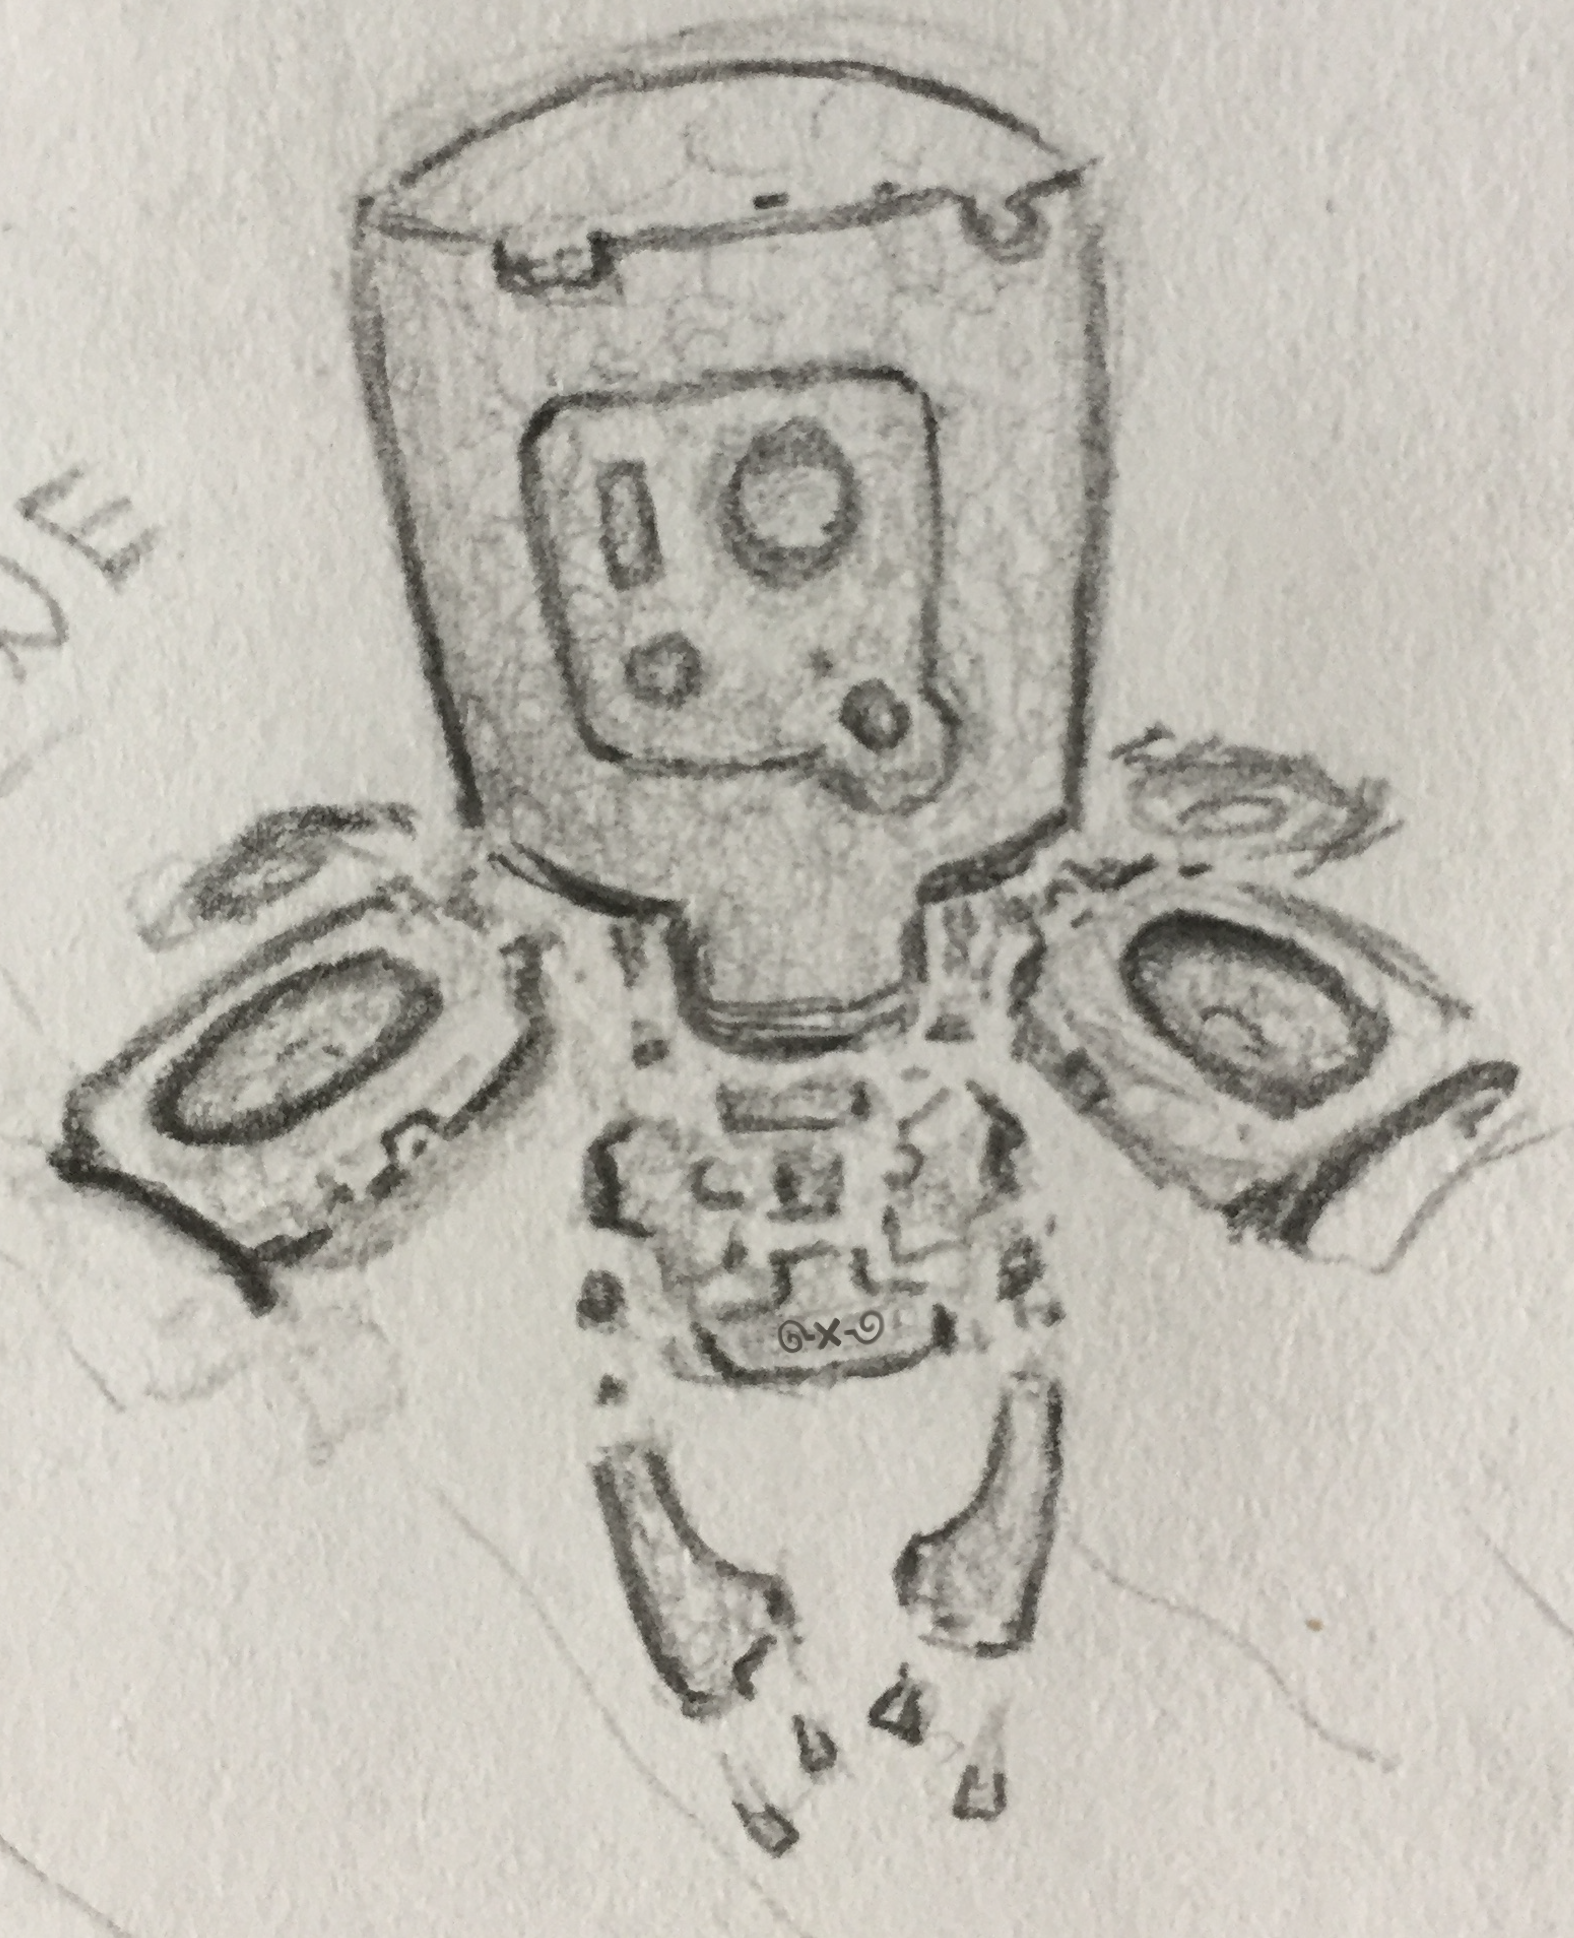 drone-mk1.png